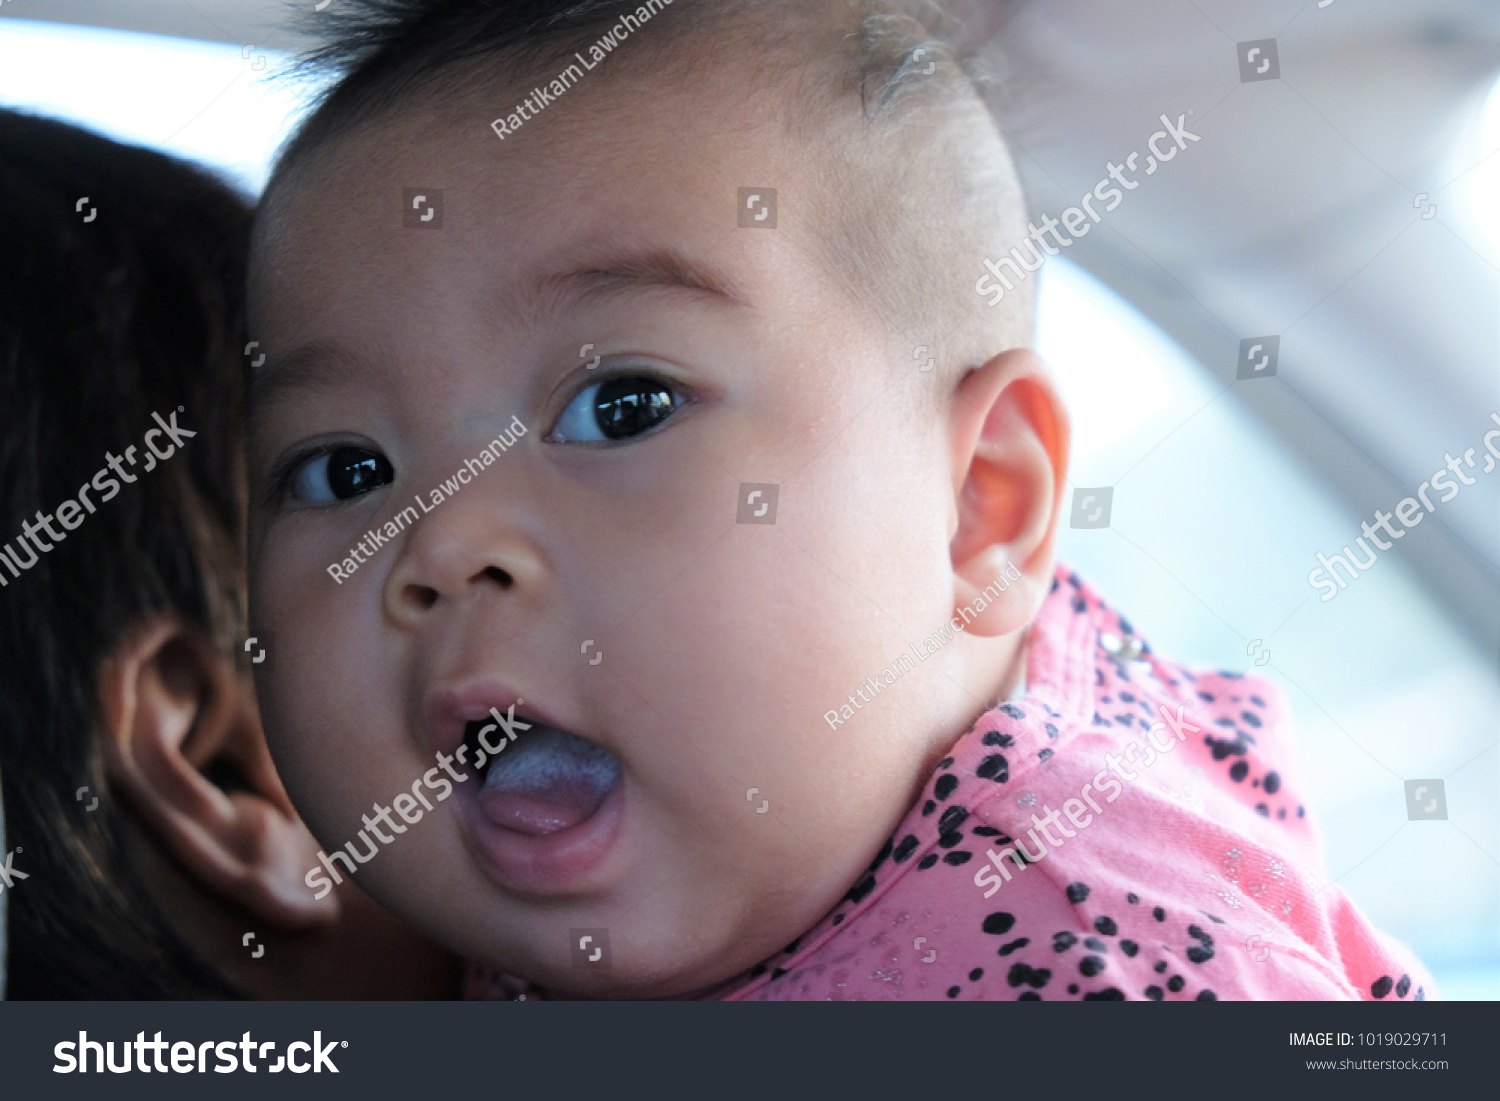 cute baby girl smiling happily her stock photo (safe to use